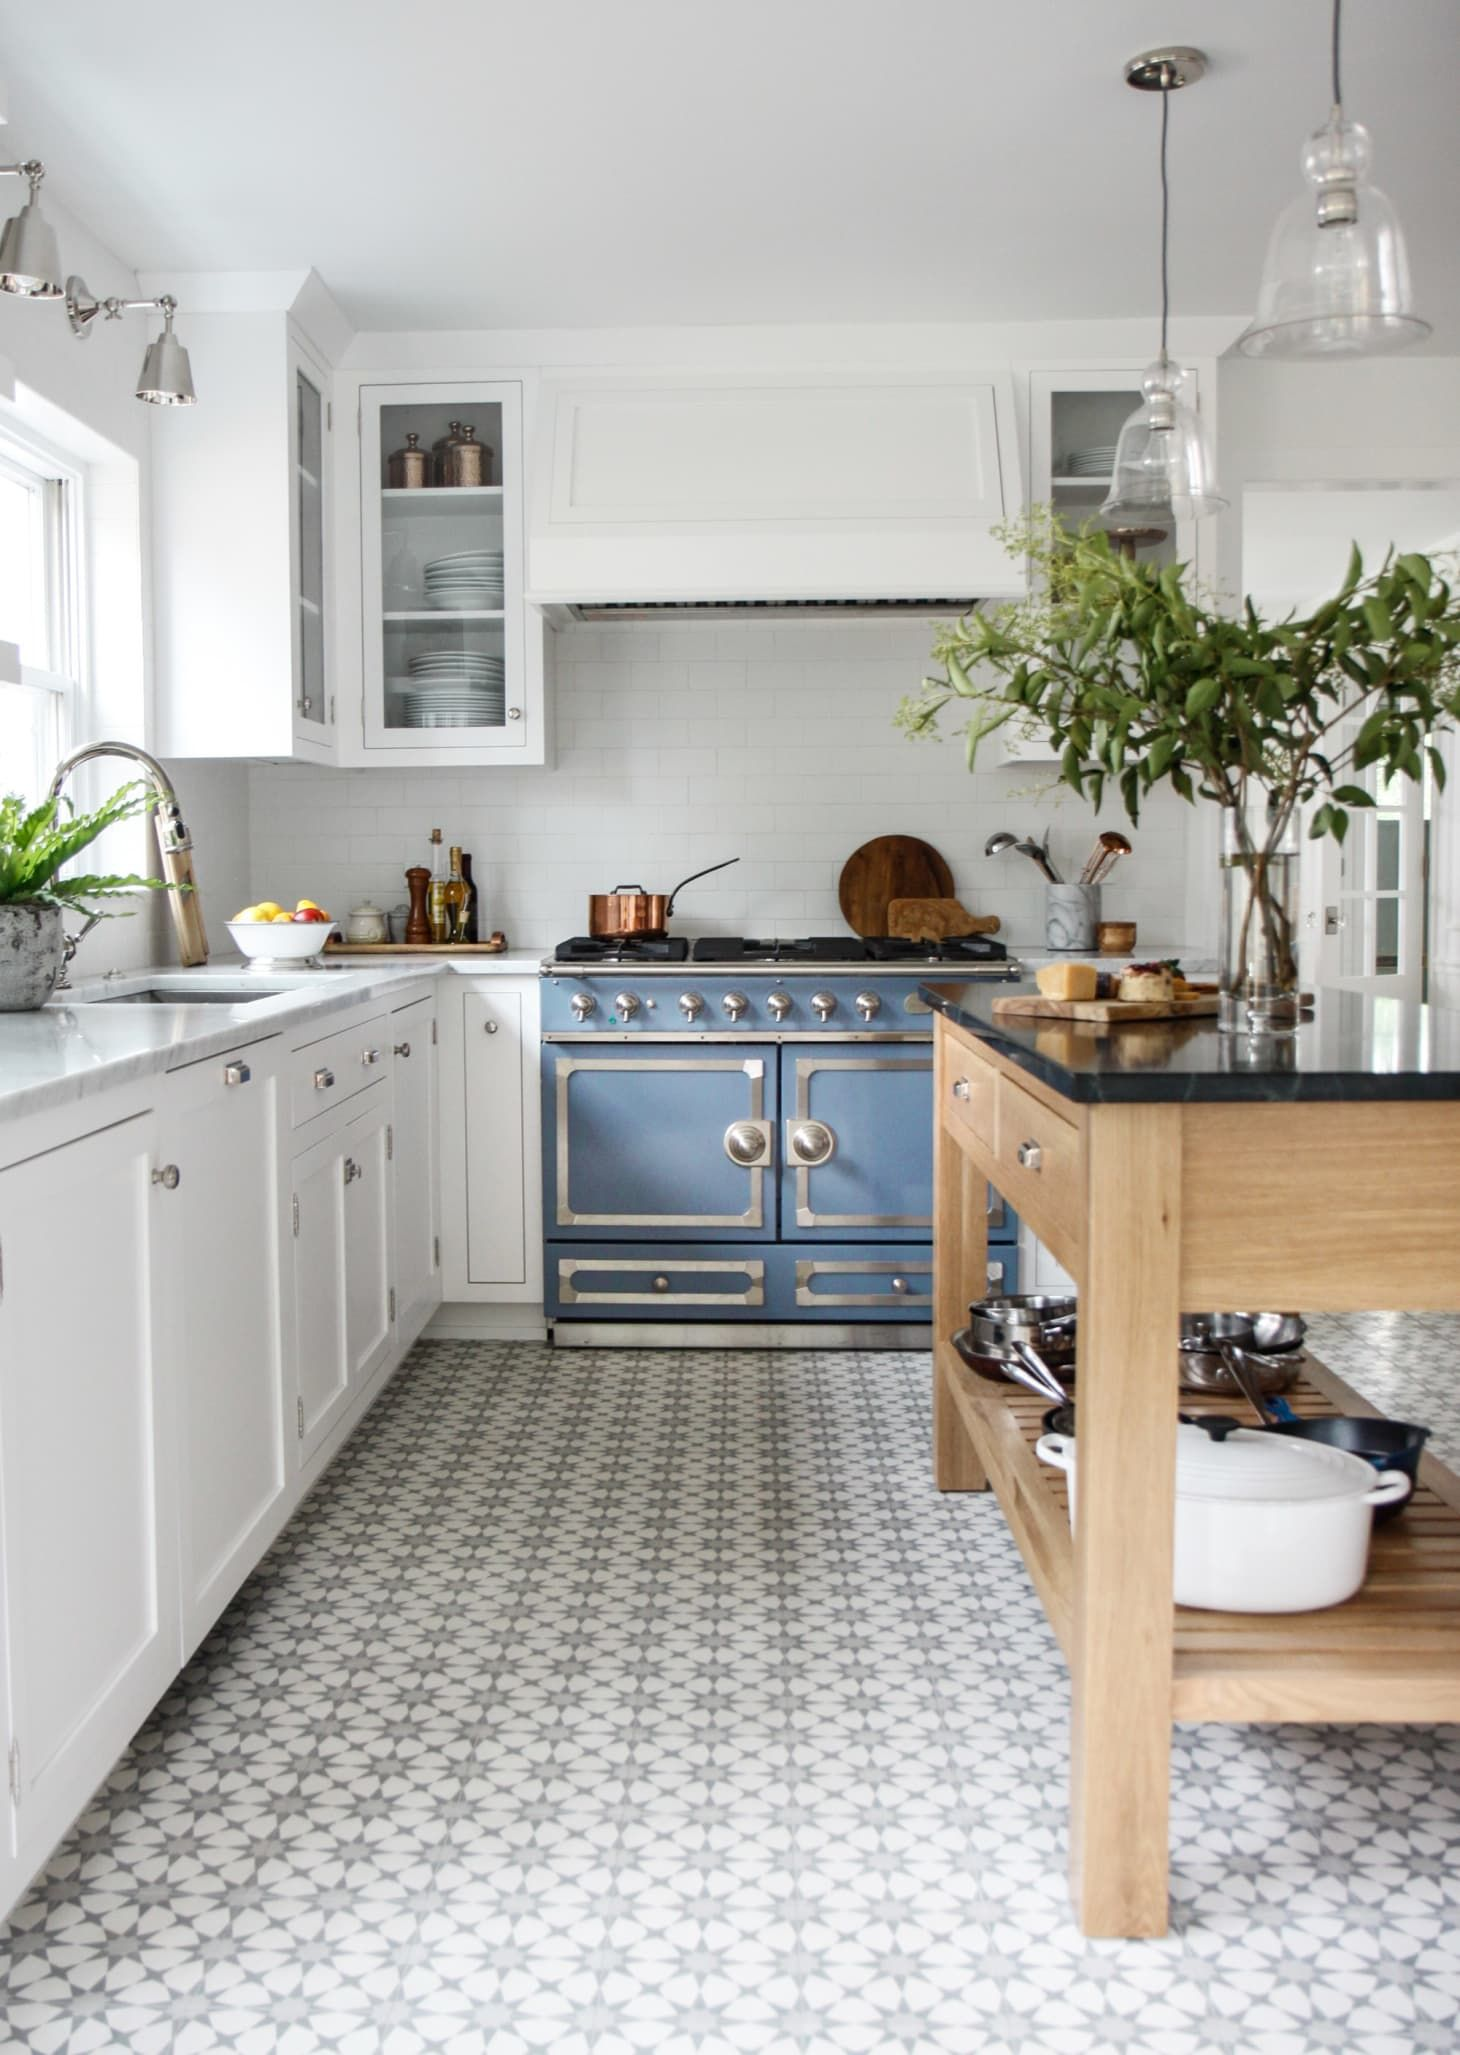 Before After From Cherry Wood Beast To Mind Blowing Beauty In 2020 Kitchen Design Trends Diy Kitchen Cabinets Build Kitchen Flooring